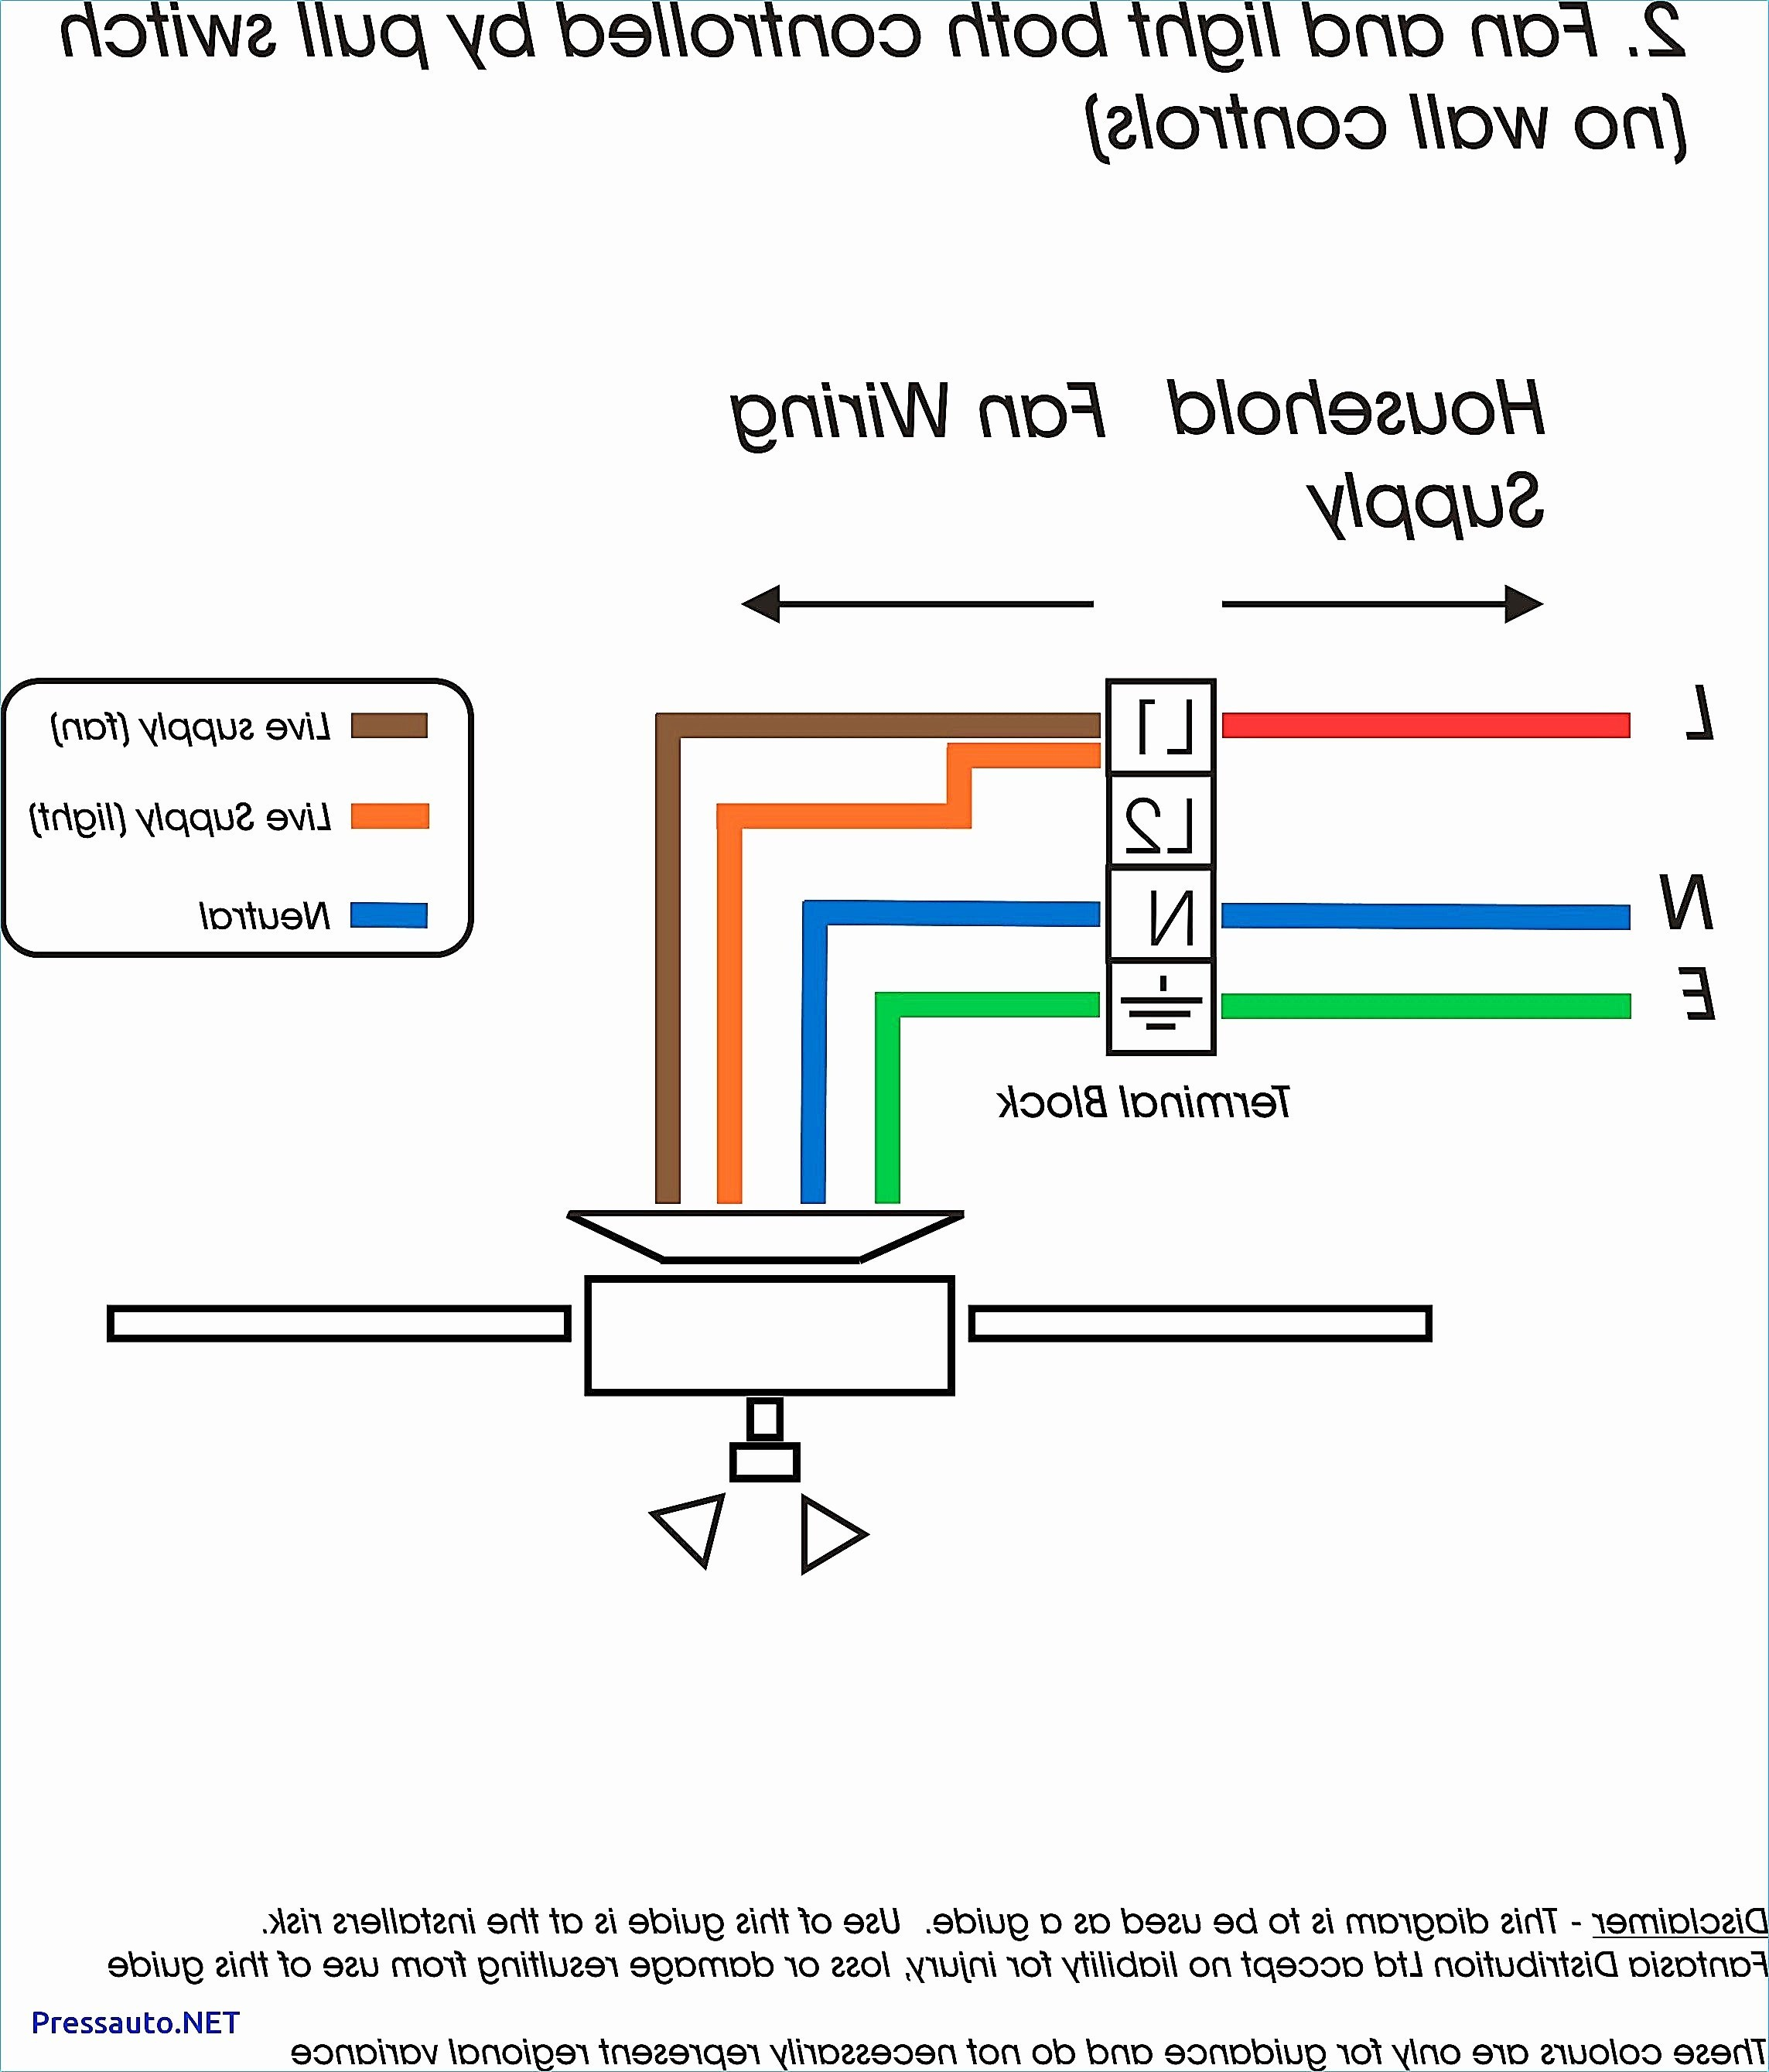 Ignition Relay Wiring Diagram Valid Lawn Mower Ignition Switch Wiring Diagram Unique Od Wiring Diagram